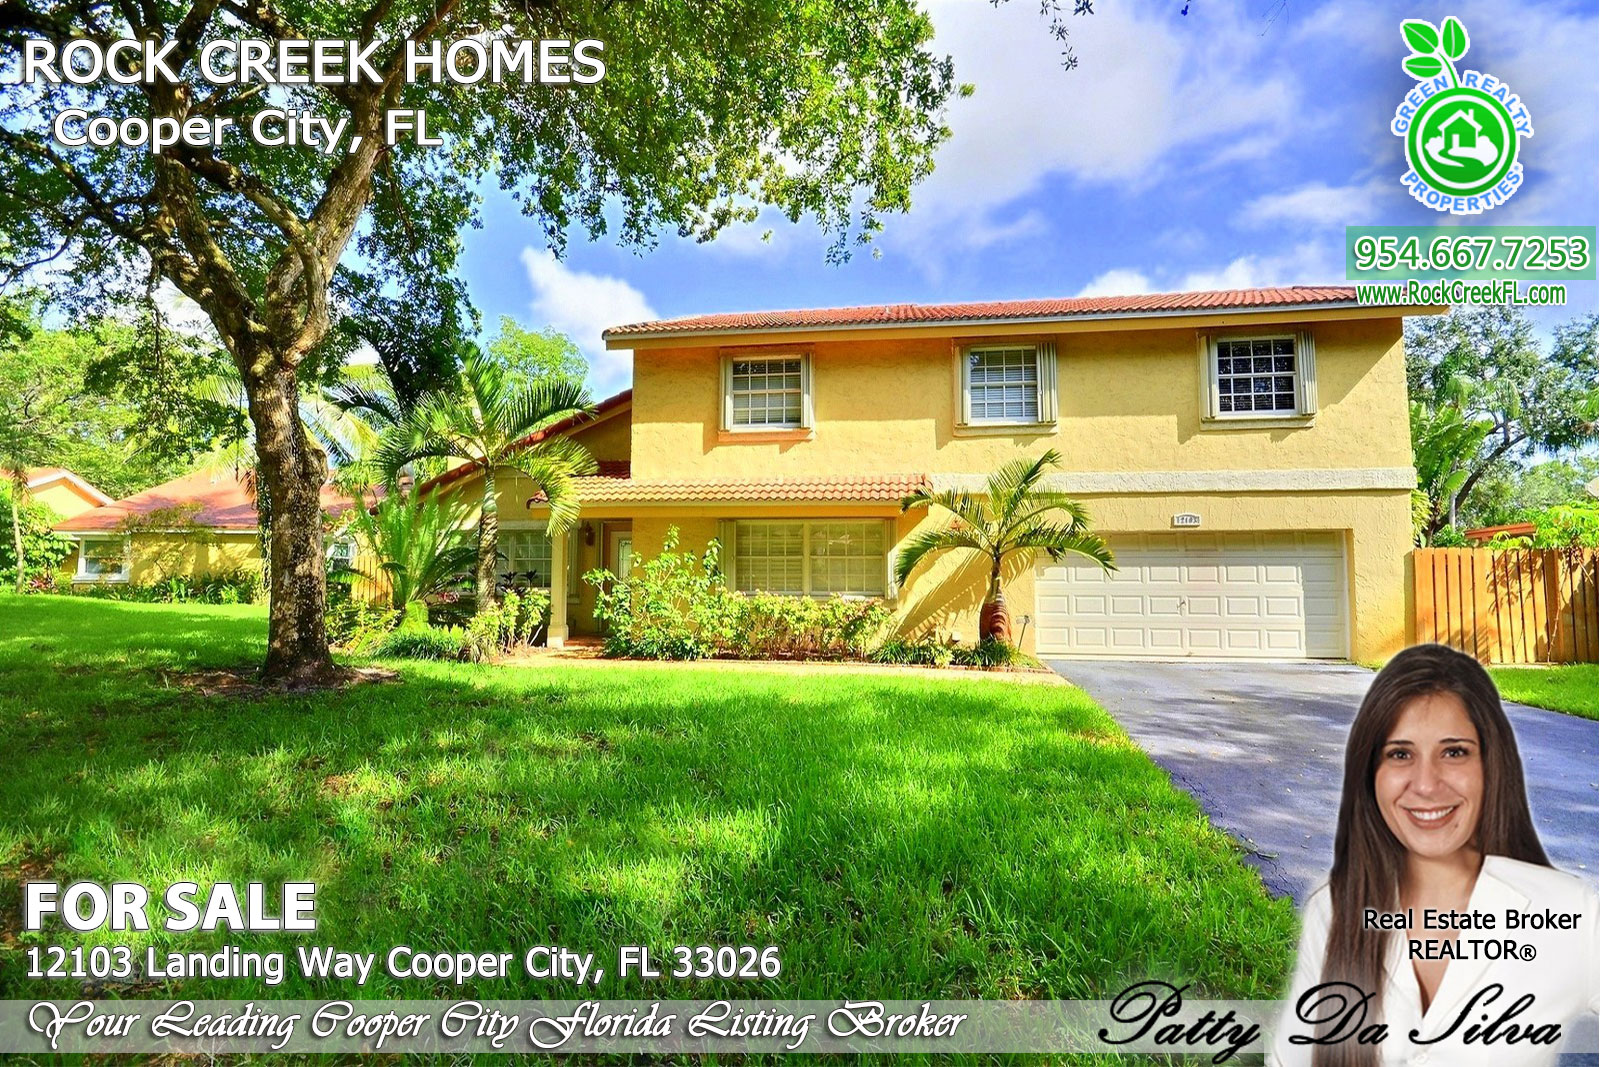 1-Rock-Creek-Cooper-City-home-for-sale-patty-da-silva-green-realty-properties-realtor-broker-agent